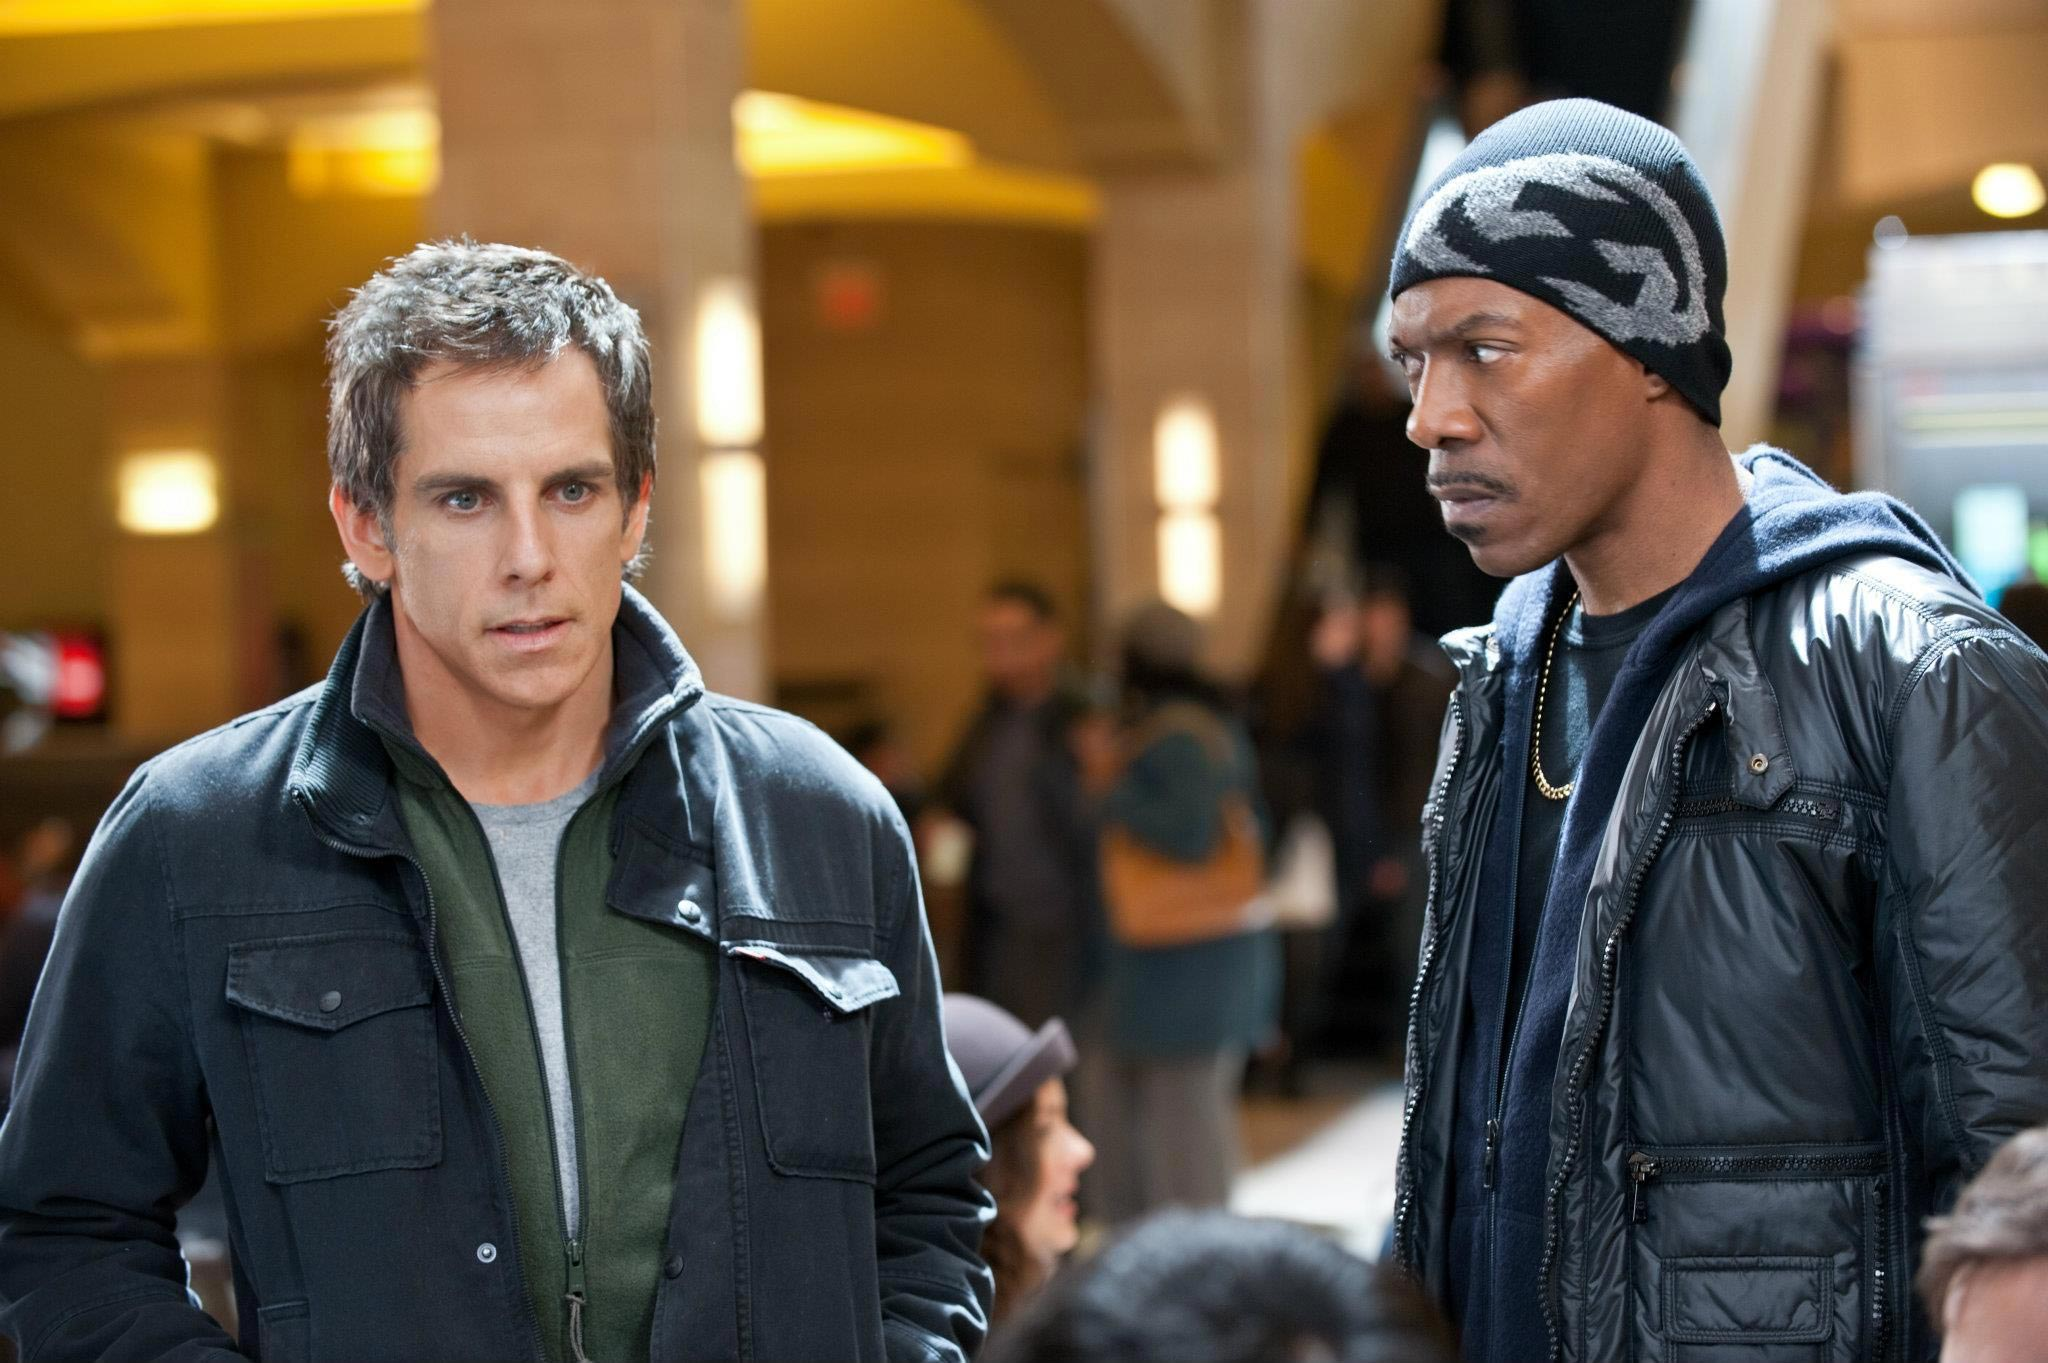 TOWER HEIST Featurette: A Look Inside - FilmoFilia